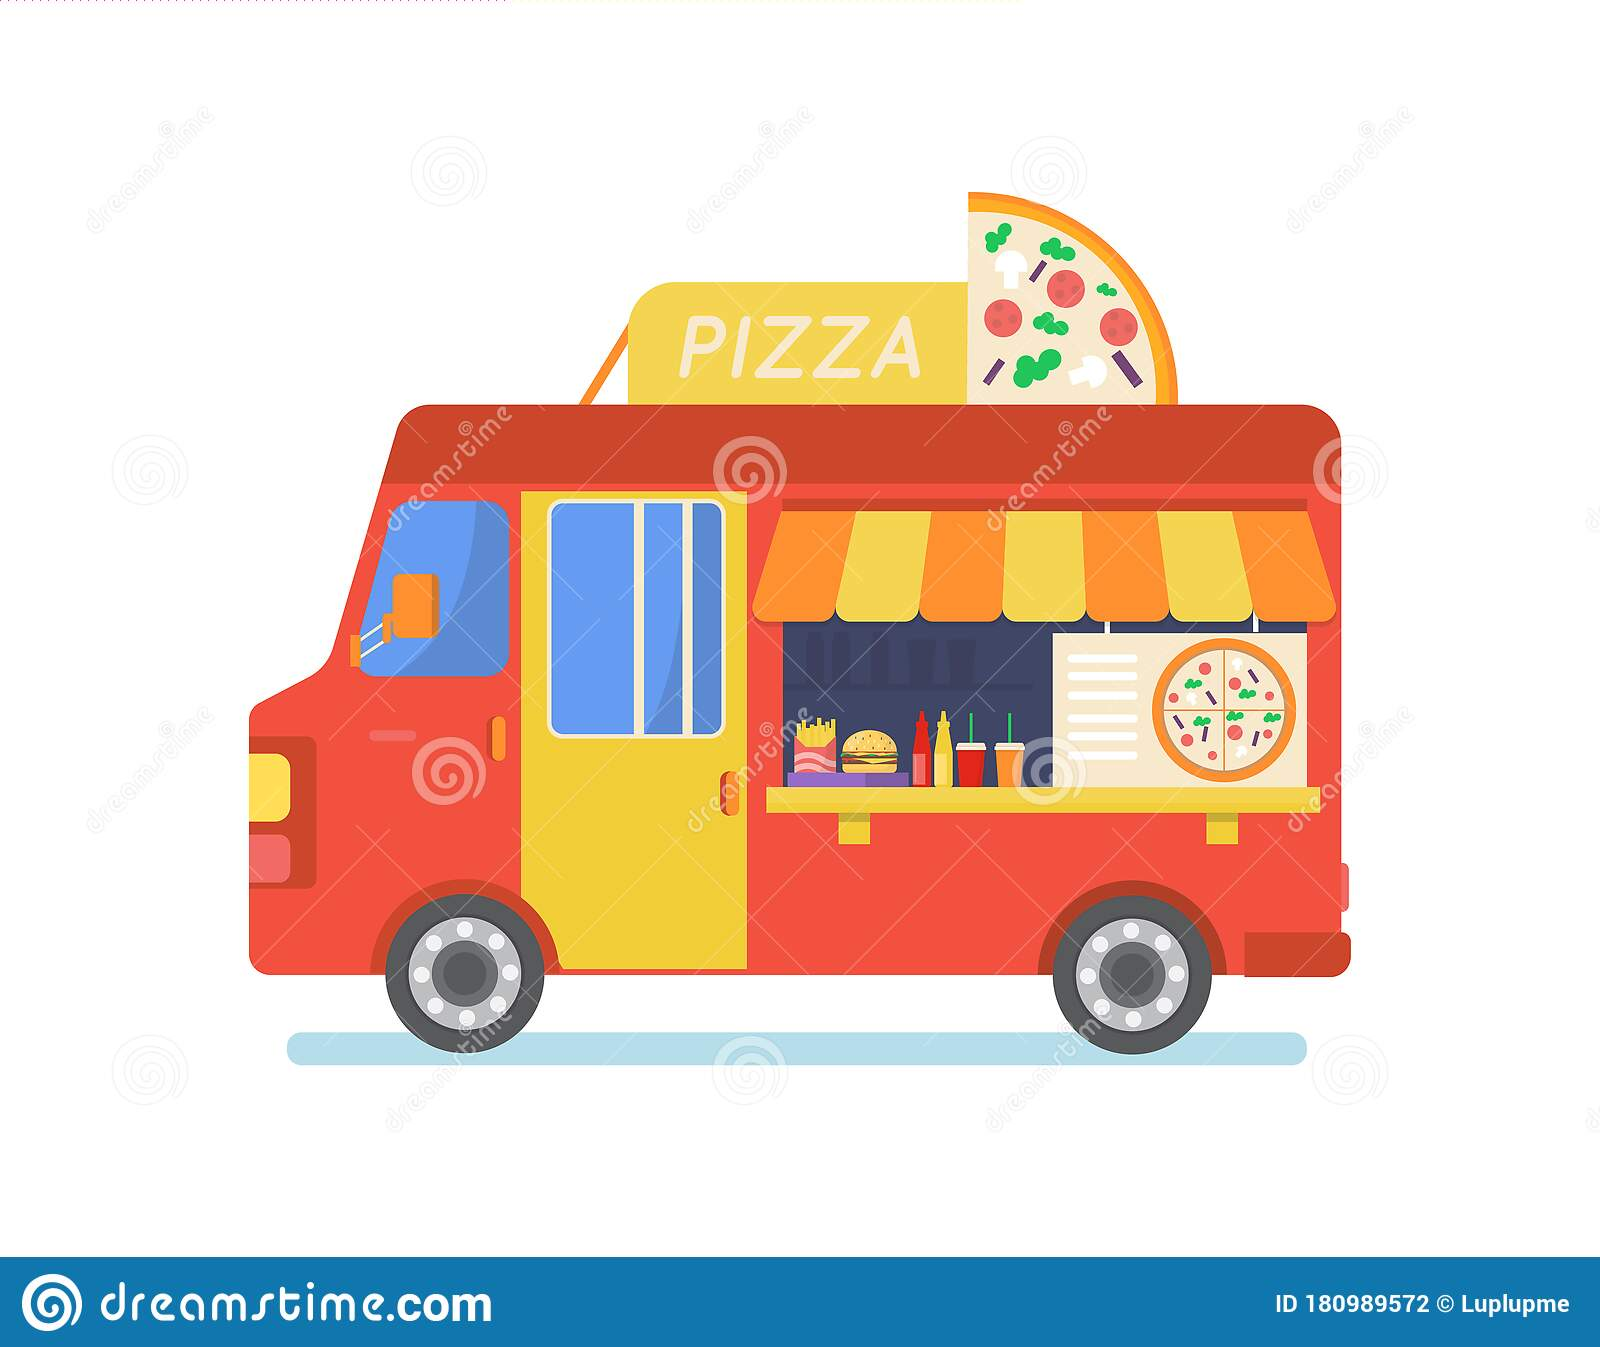 Street Food Truck Set Vector Illustration Cartoon Van Selling Chinese Streetfood Or Pizza Kebab In Market Coffee Icons Stock Vector Illustration Of Sale Isolated 180989572